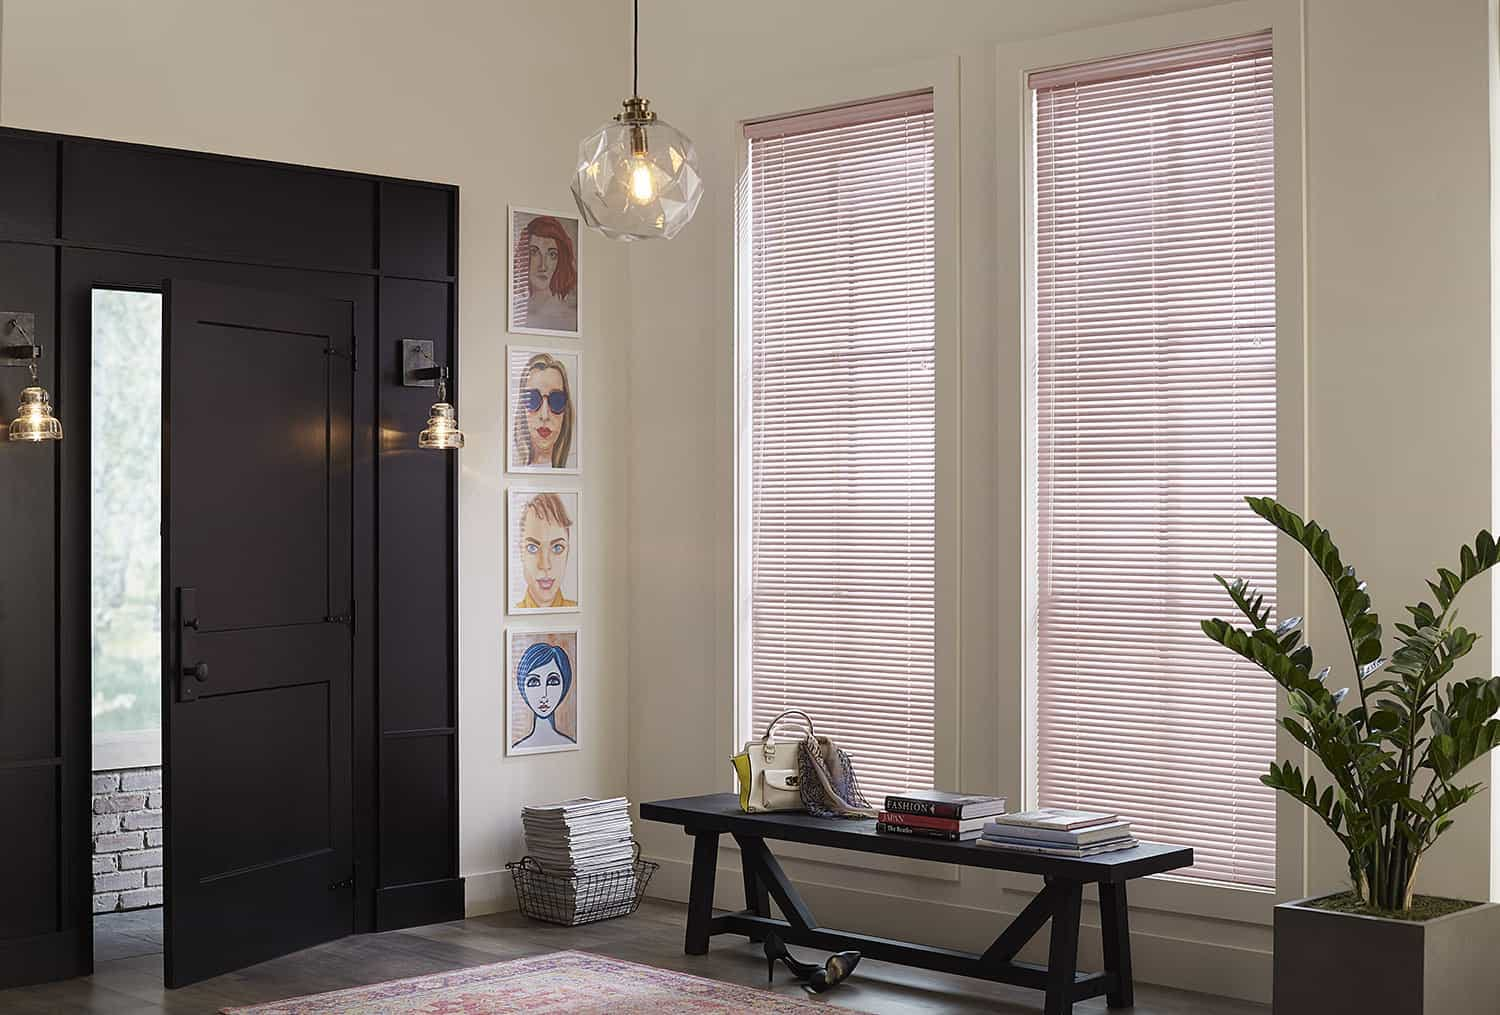 Modern entry-way with dark wood furniture and pink aluminum mini blinds.